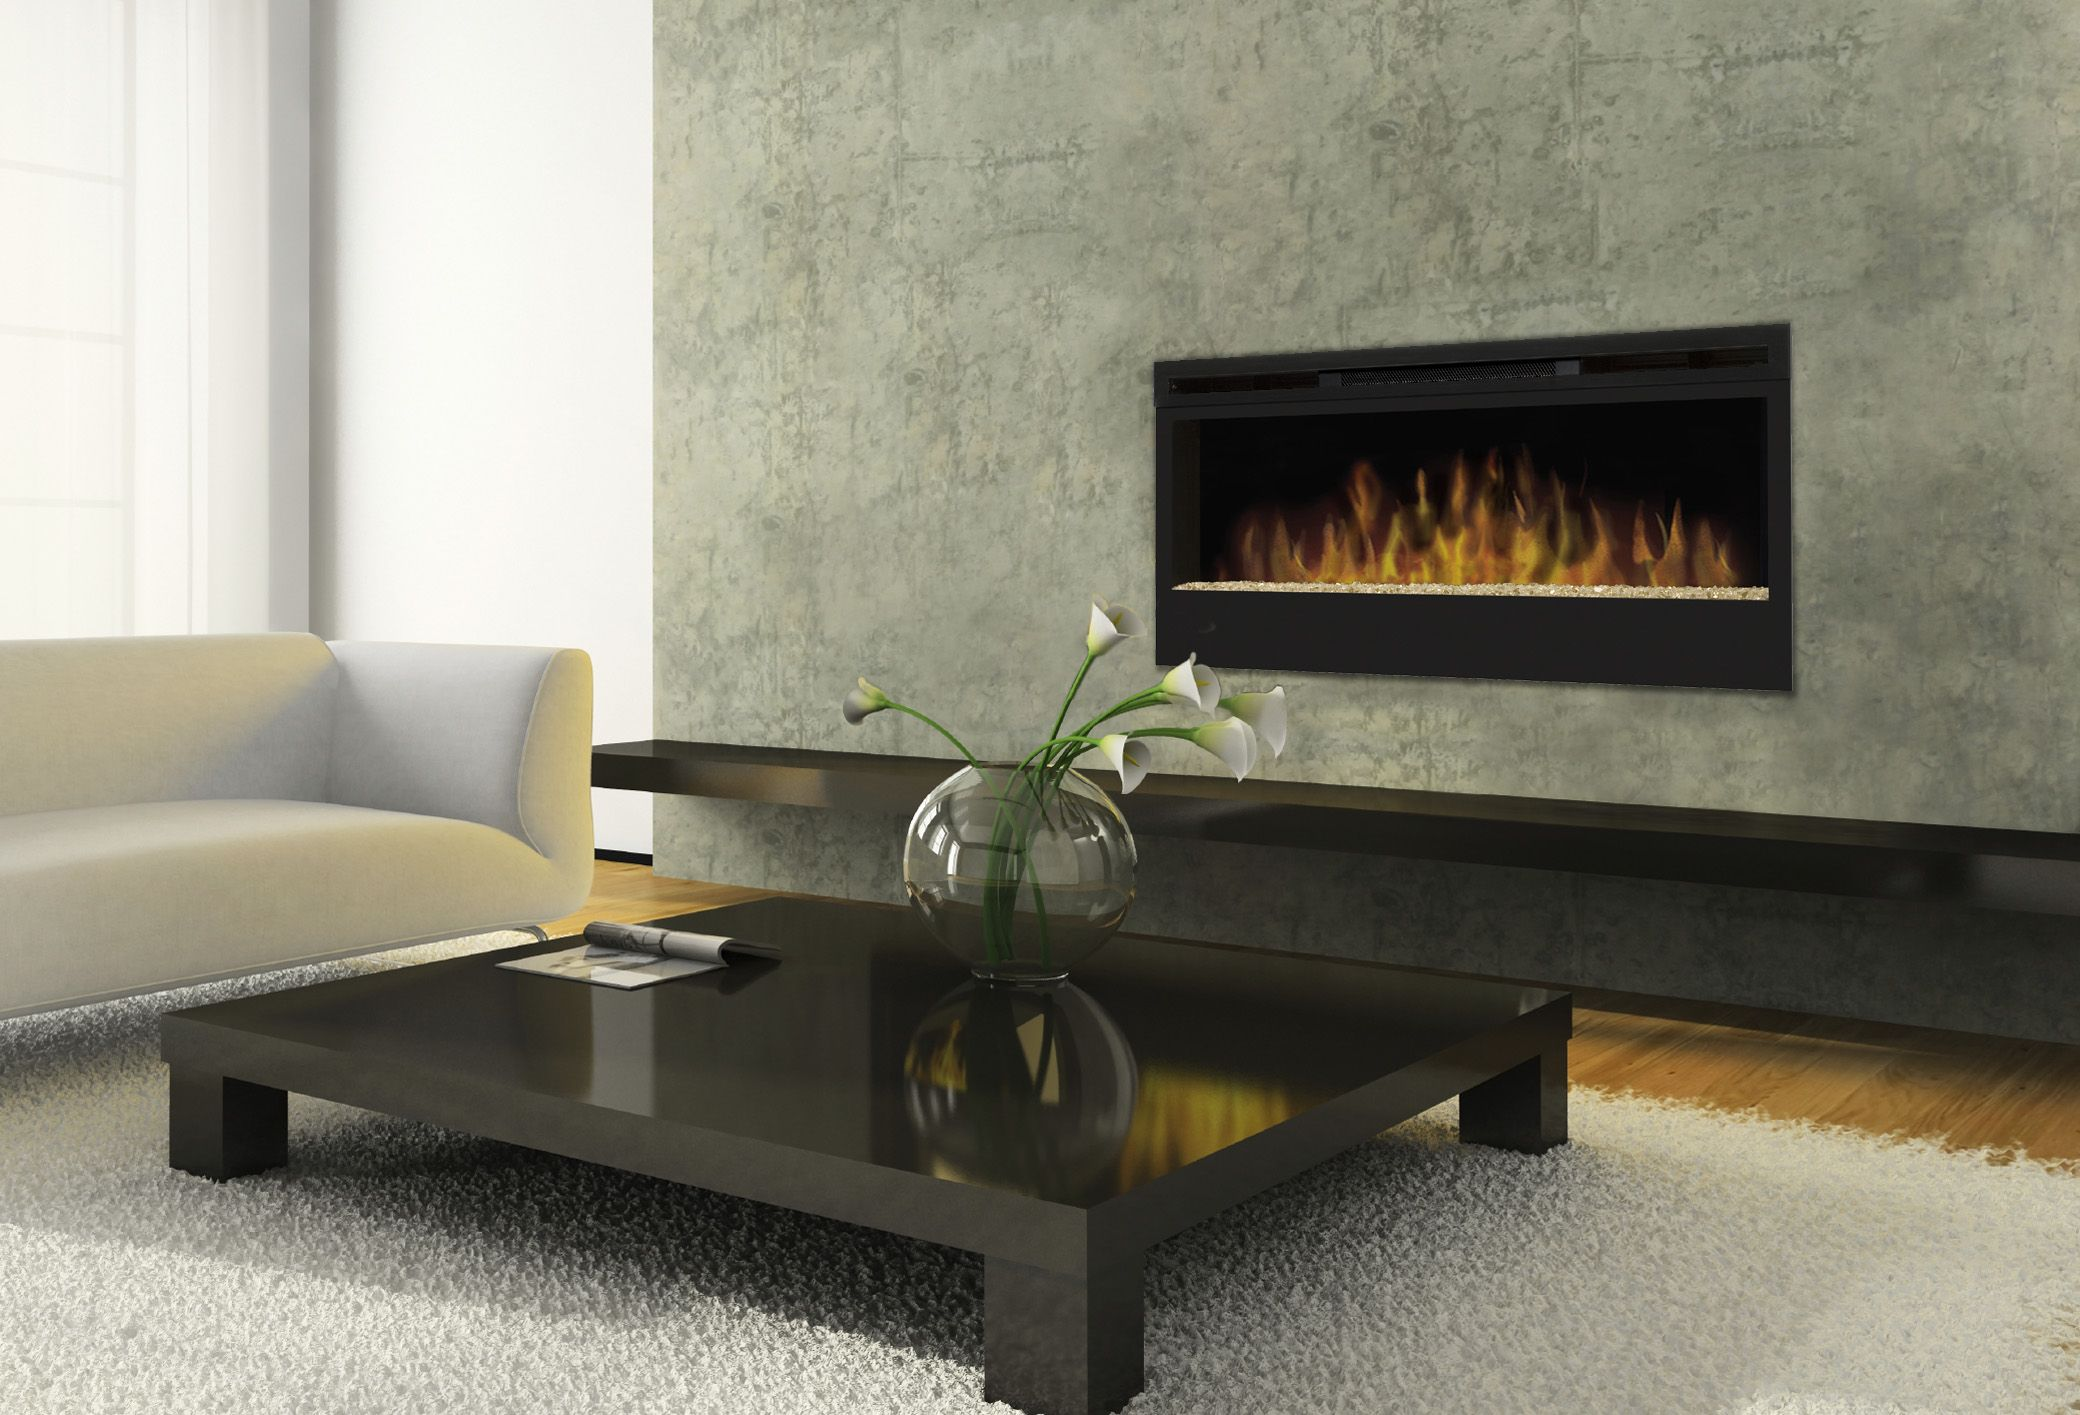 Living room with electric fireplace google search fireplace decor pinterest wall mount - Contemporary wall mount fireplace ...